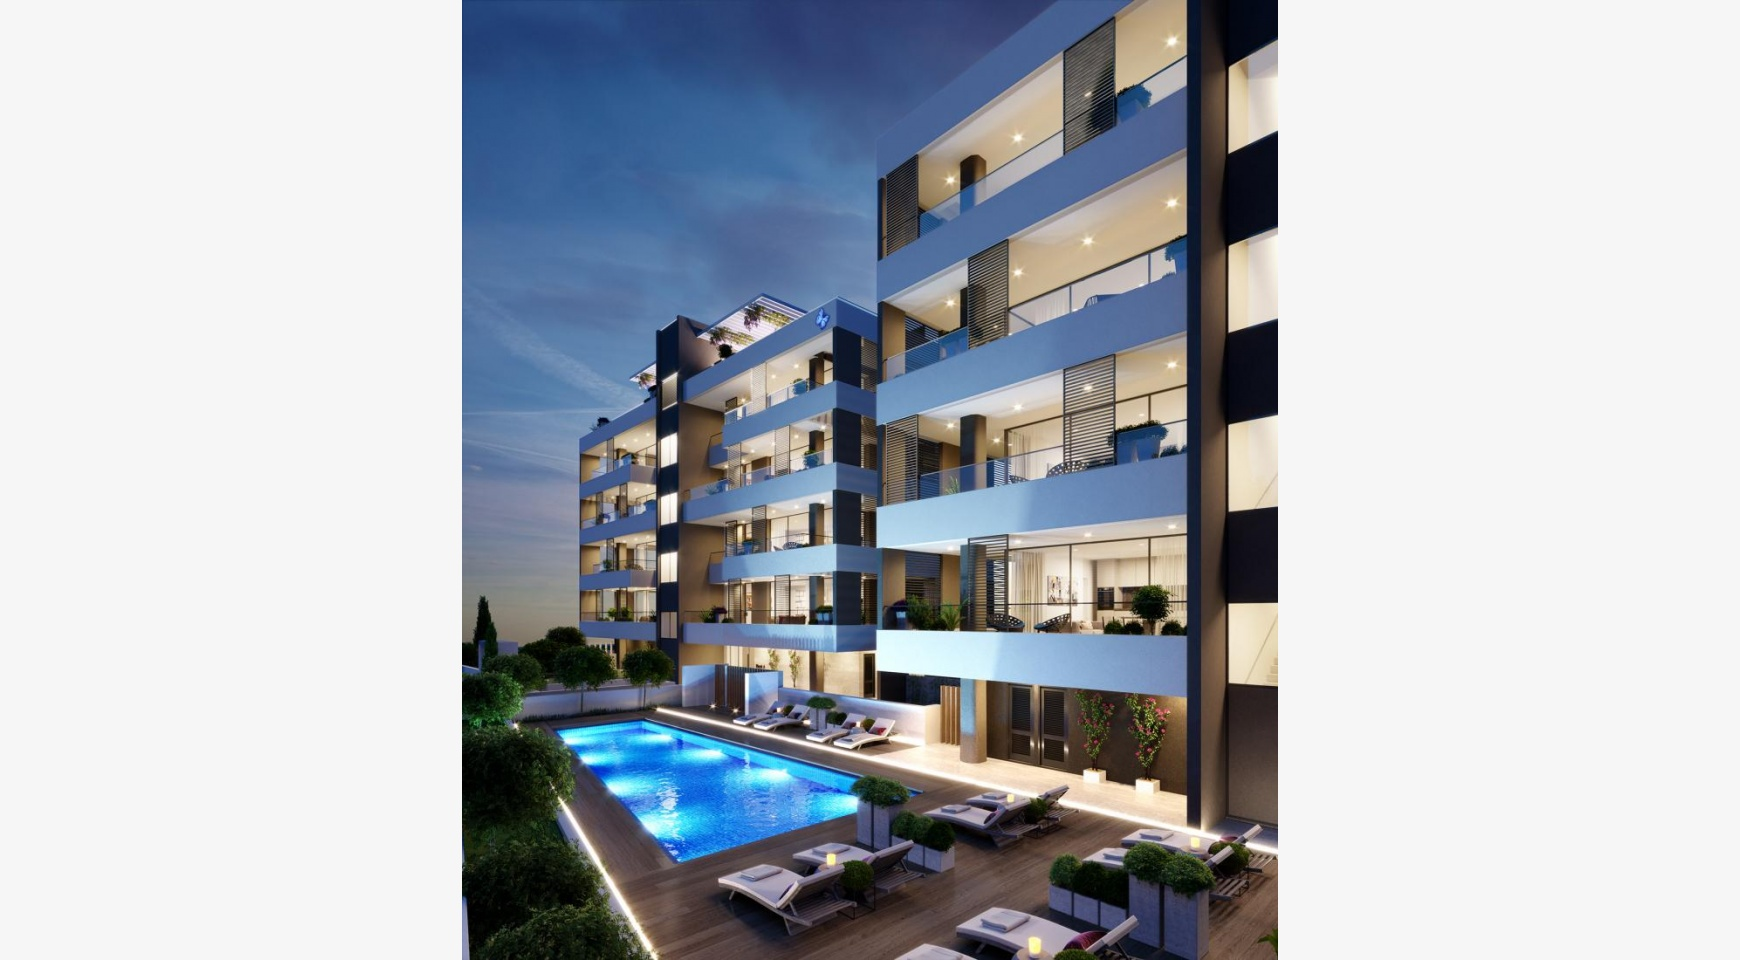 3 Bedroom Apartment in a New Complex in Potamos Germasogeia - 3